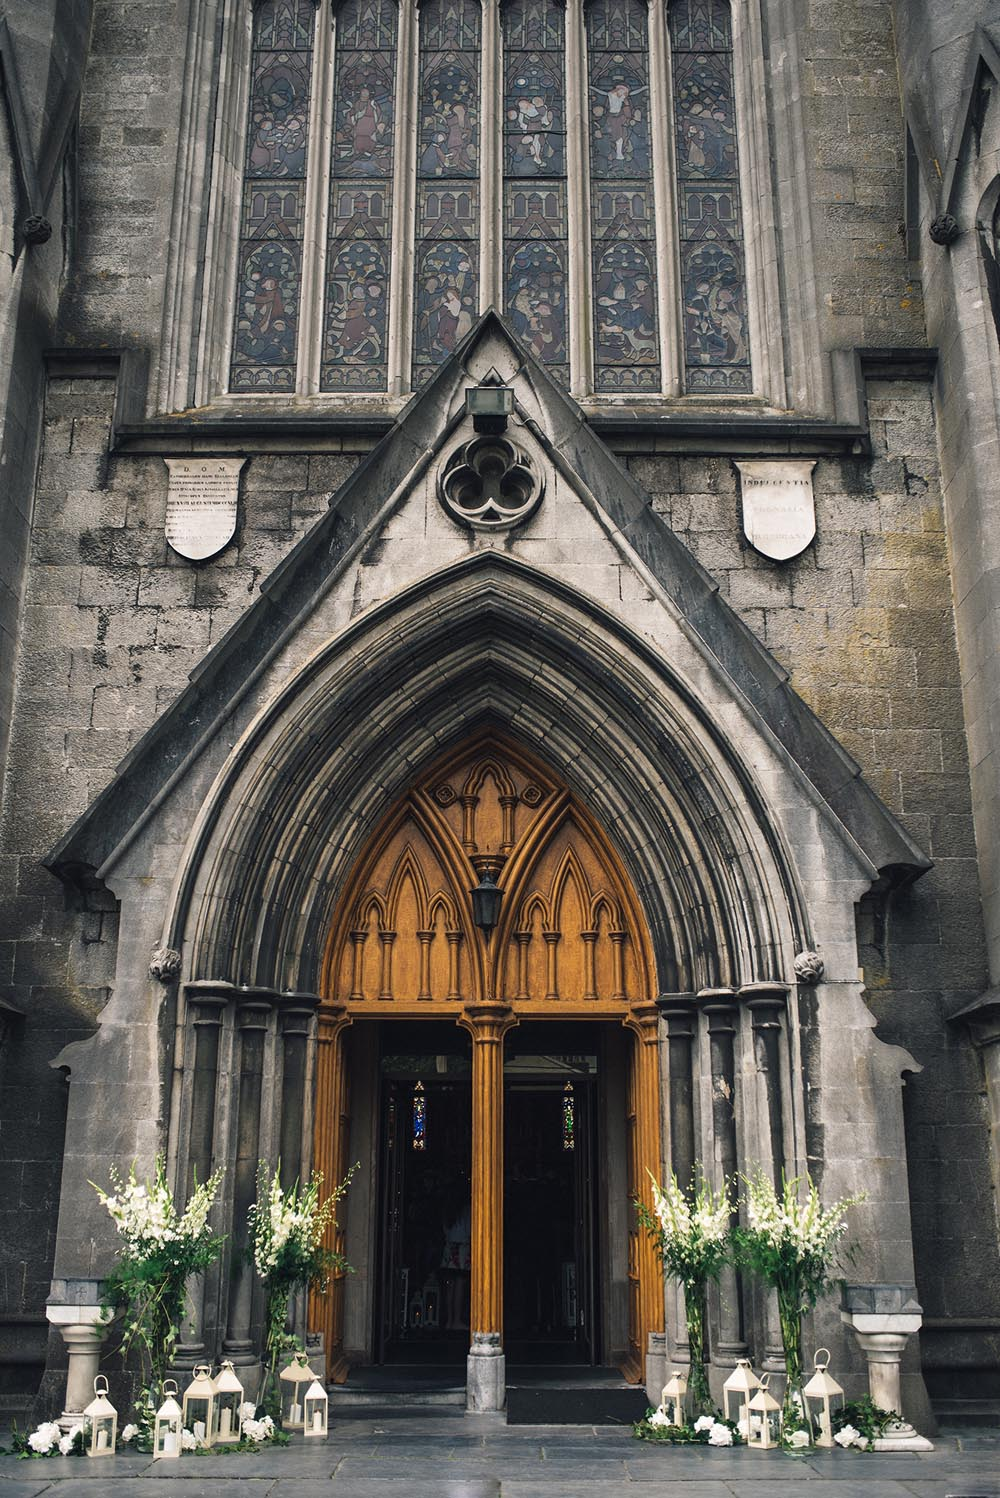 Doorway of St Mary's Cathedral in Kilkenny city